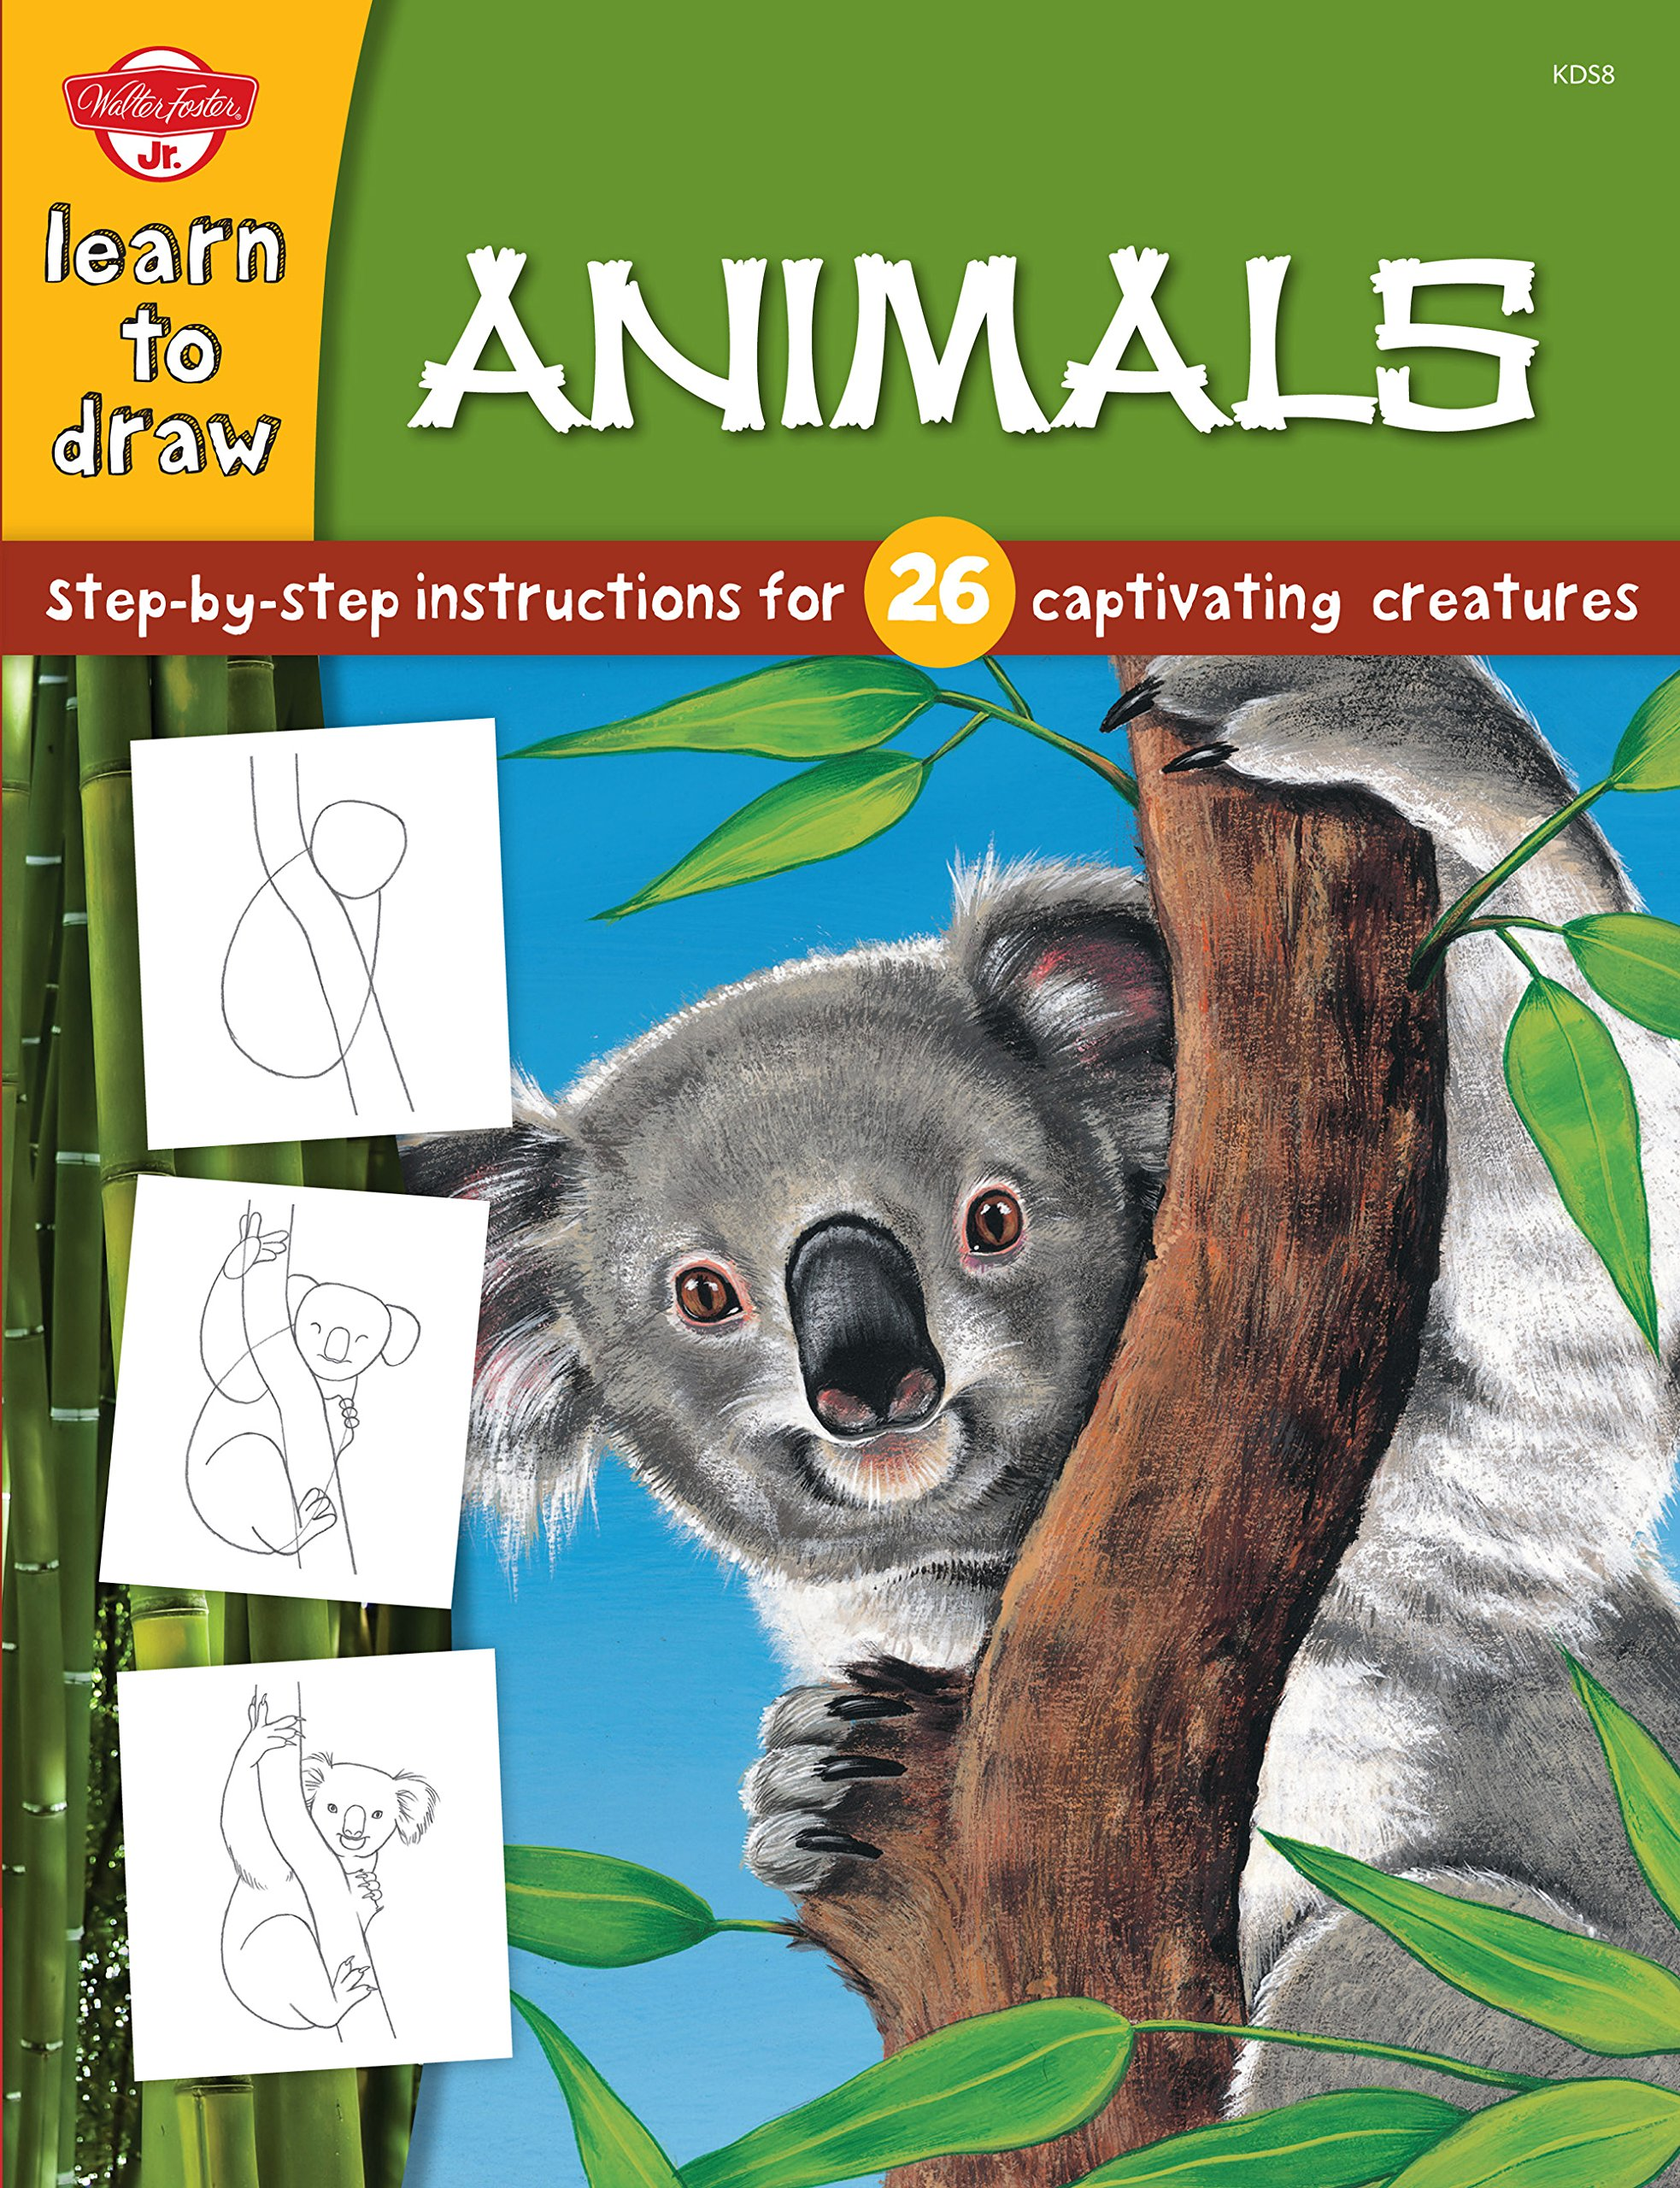 Animals: Step-by-step instructions for 26 captivating creatures (Learn to Draw) PDF